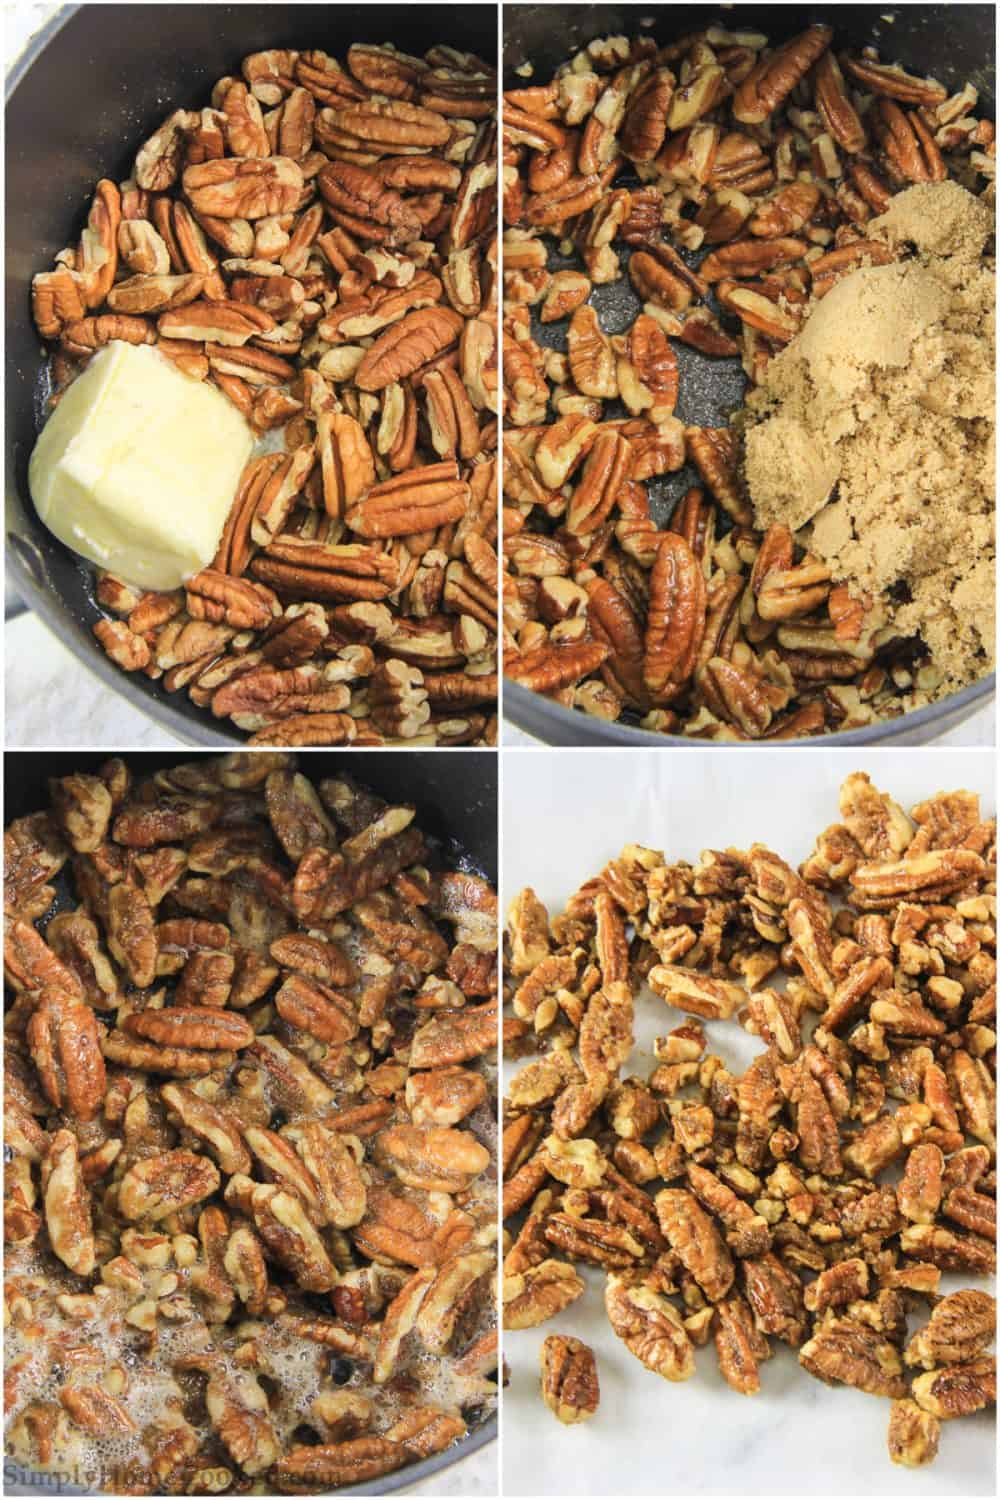 It is easy to make candied pecans for salad on your own at home. This simple recipe is easy enough to be done in just a few minutes and is perfect for the spinach strawberry feta salad recipe.